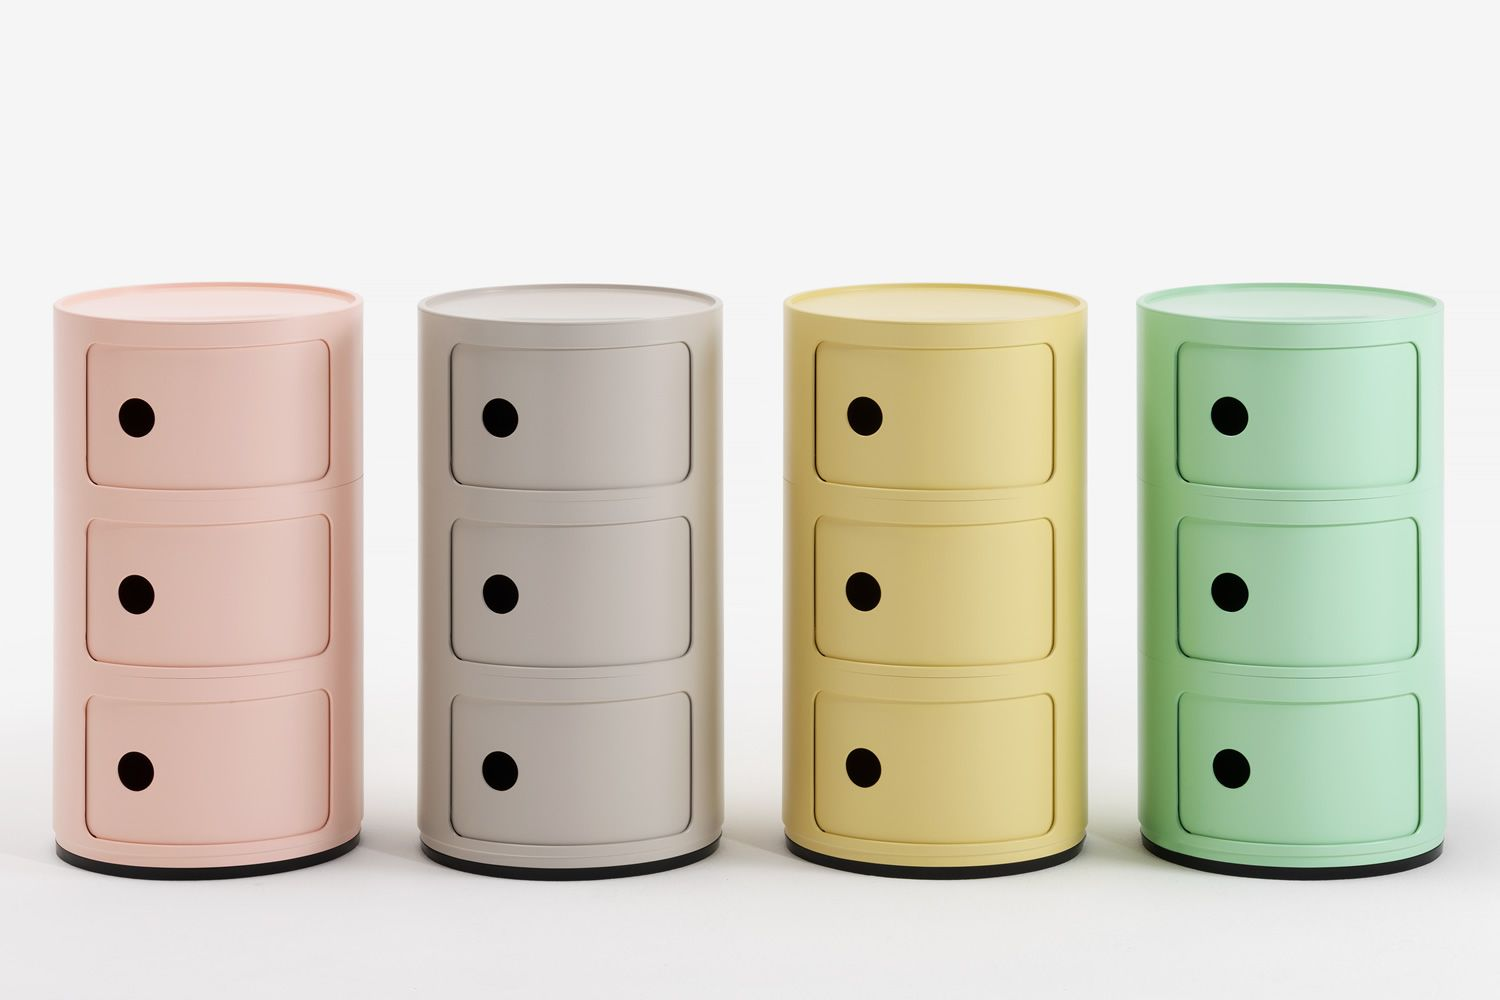 Design Kartell container, with three drawers